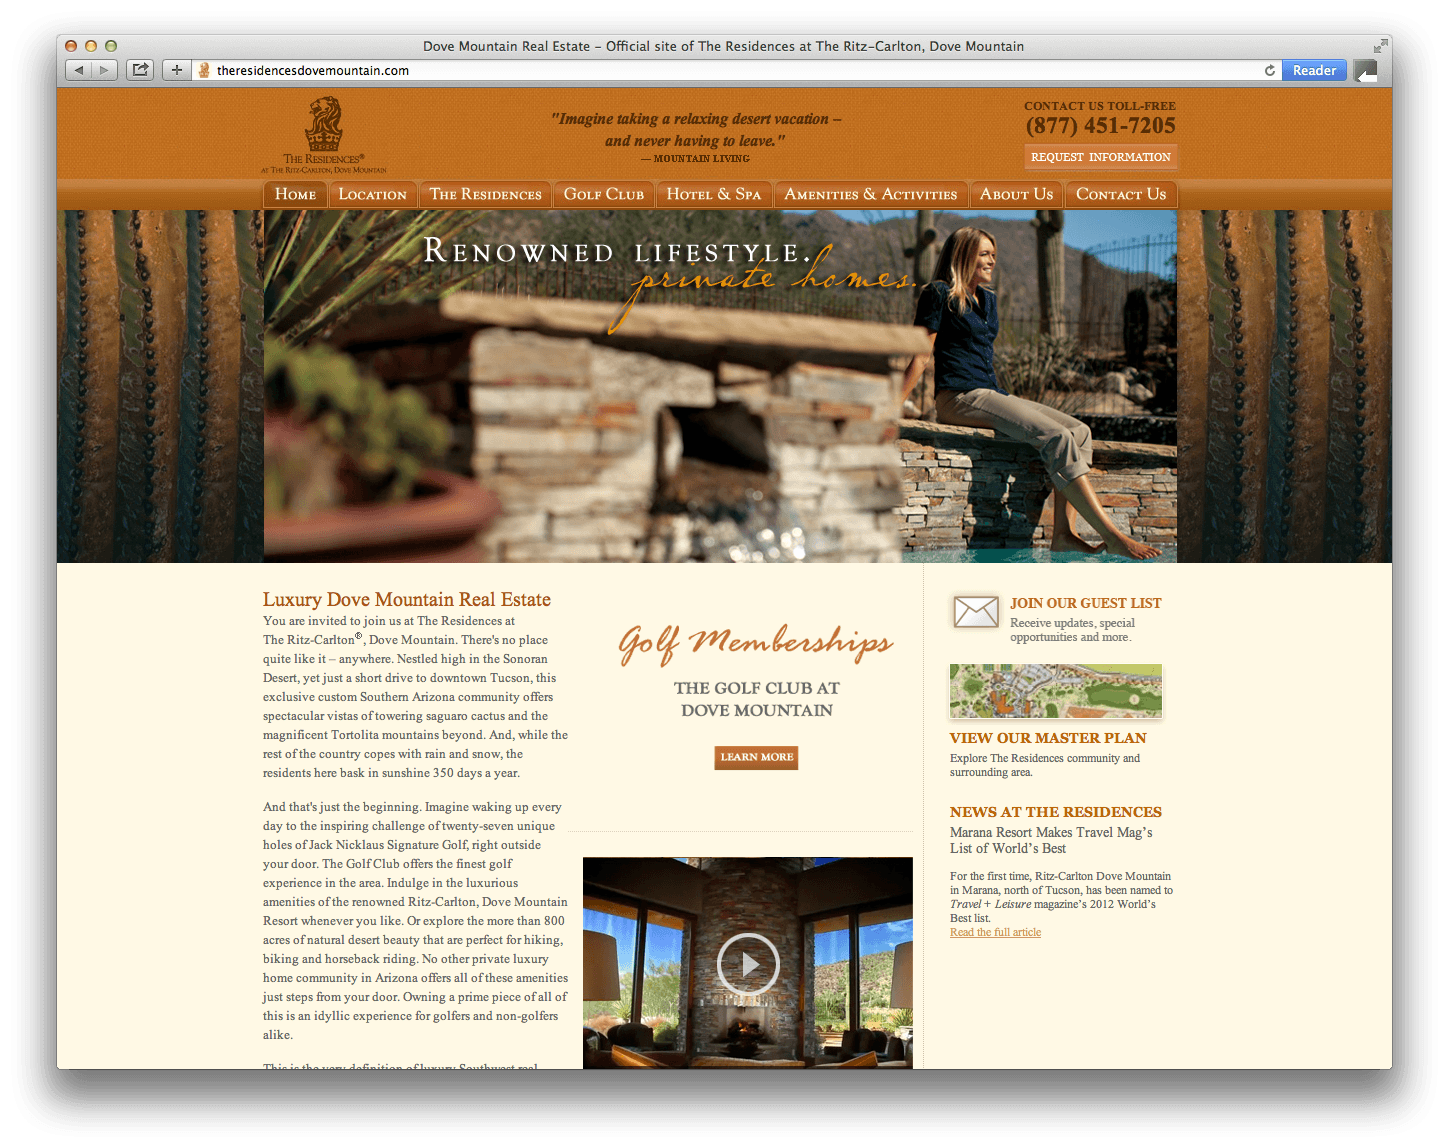 The Ritz-Carlton, Dove Mountain Website Design